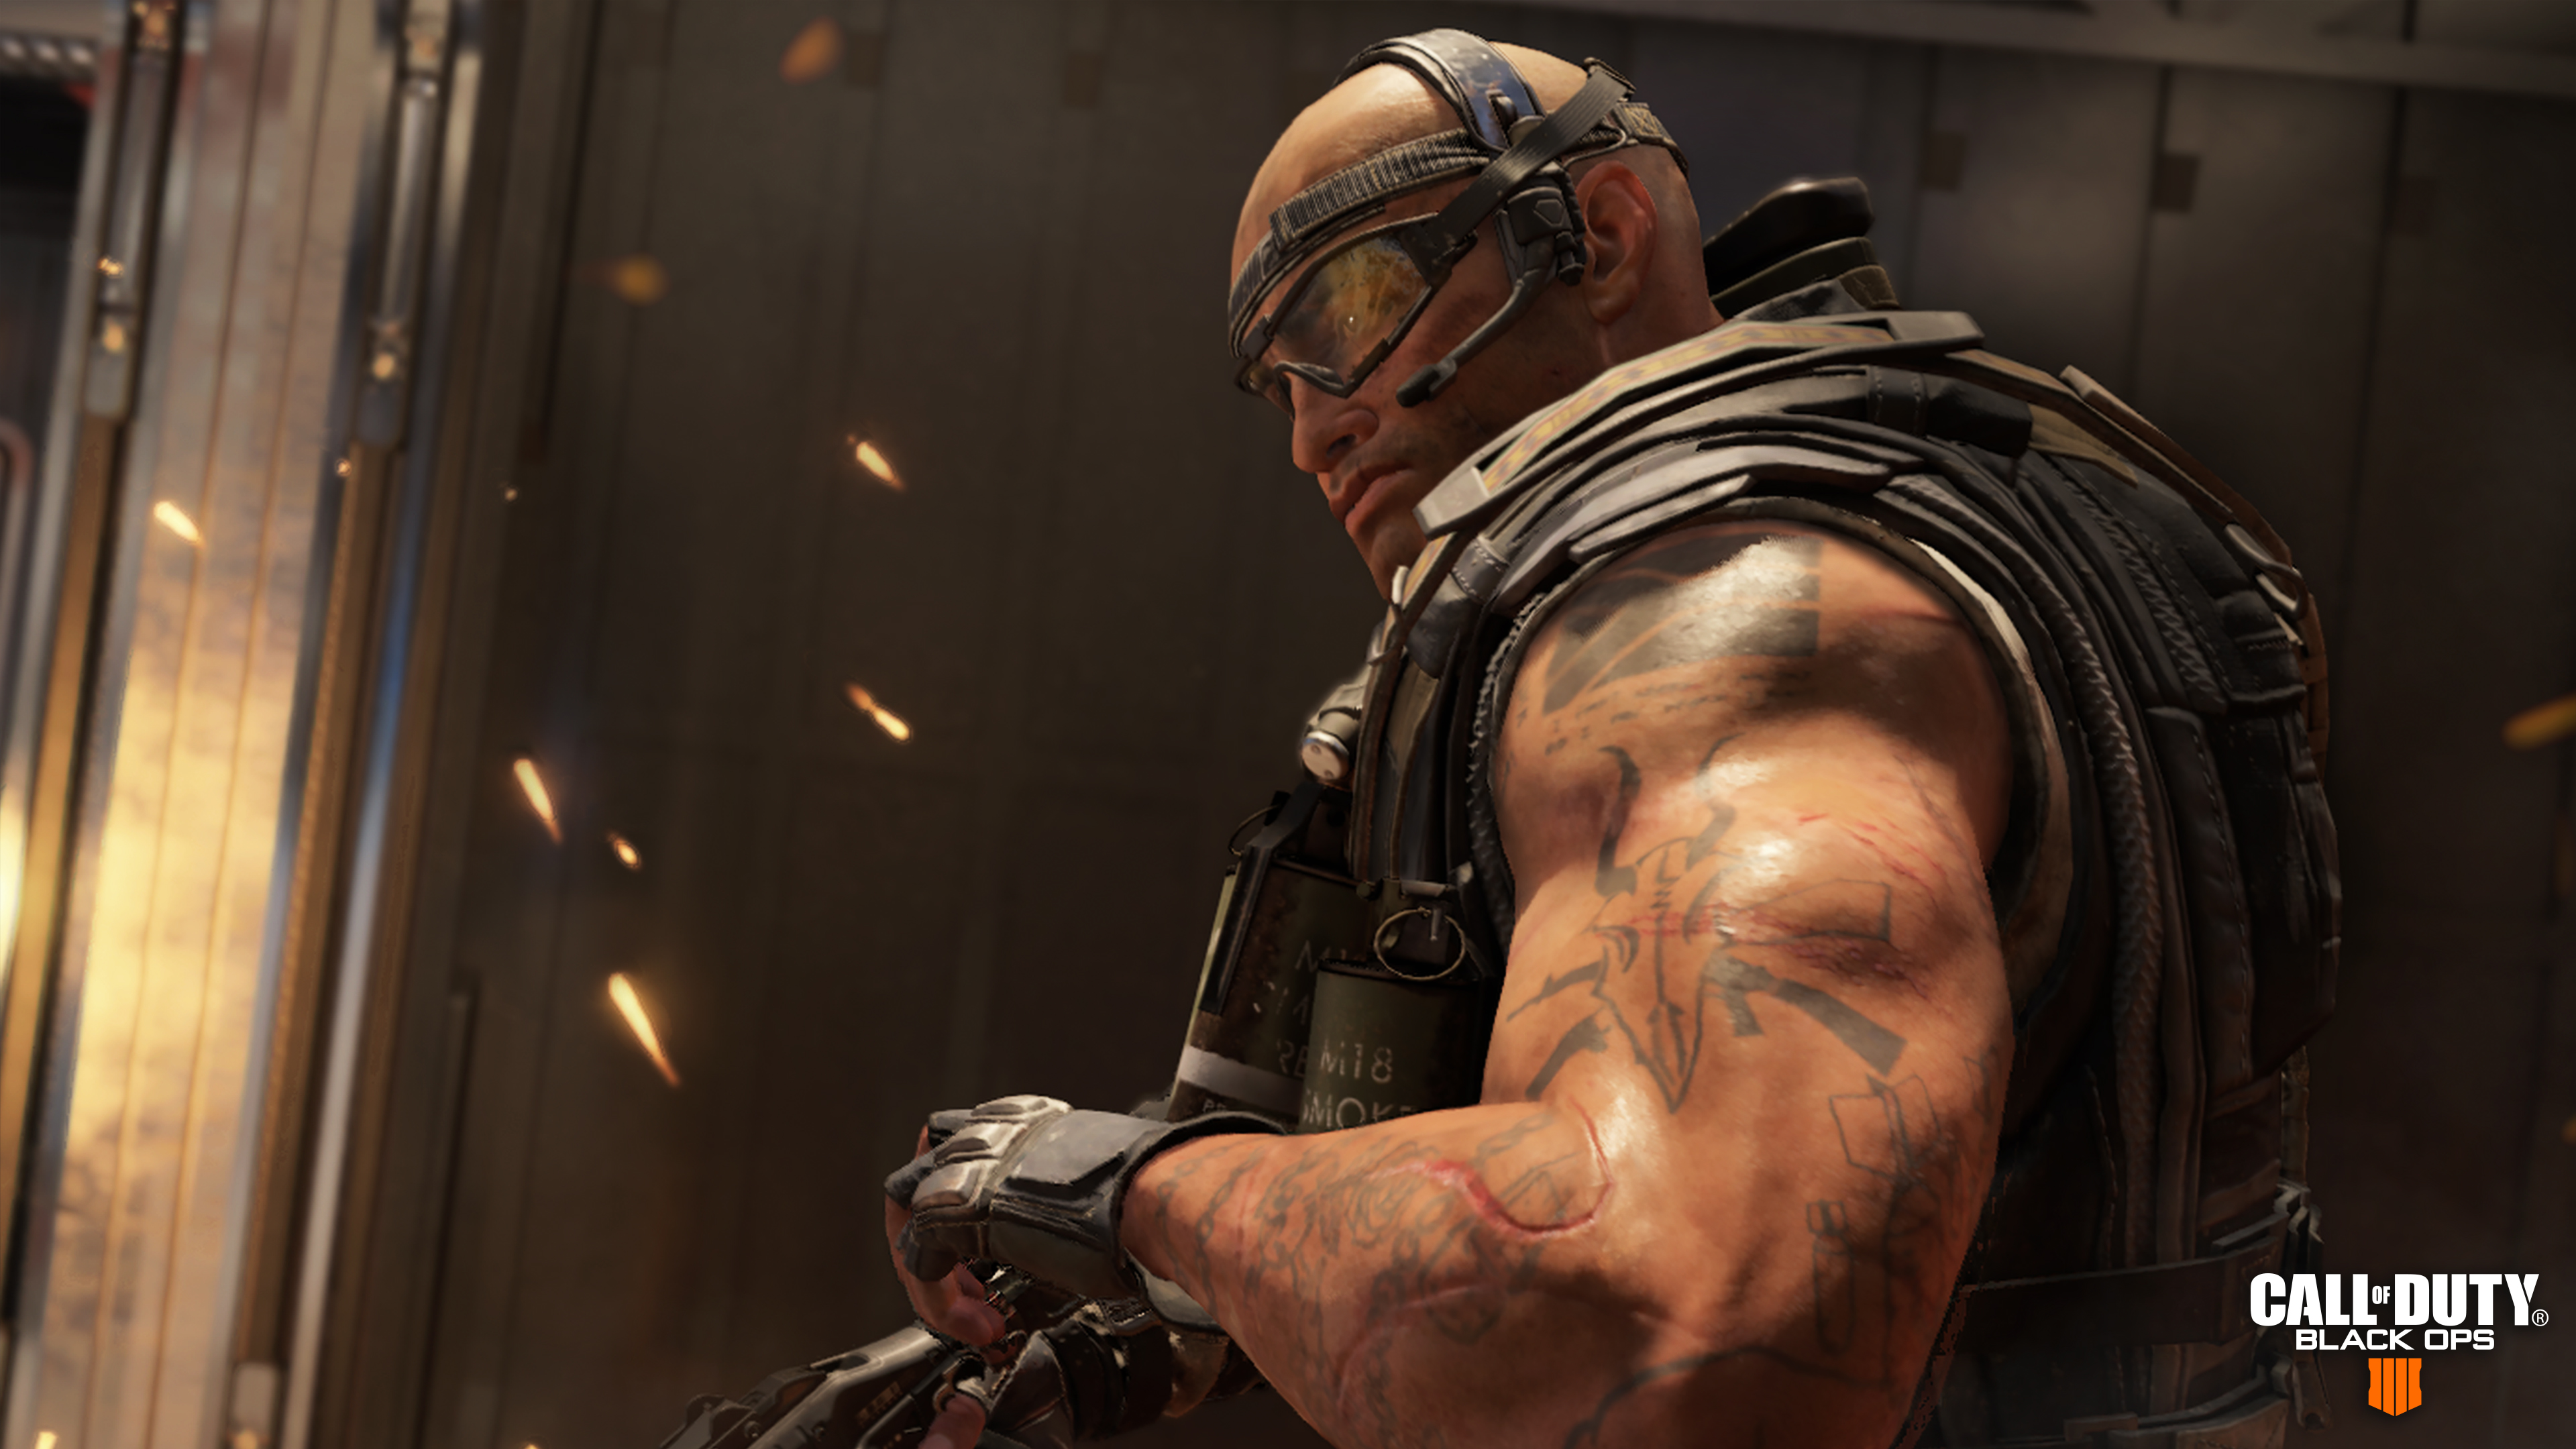 Call of Duty: Black Ops IIII Revealed